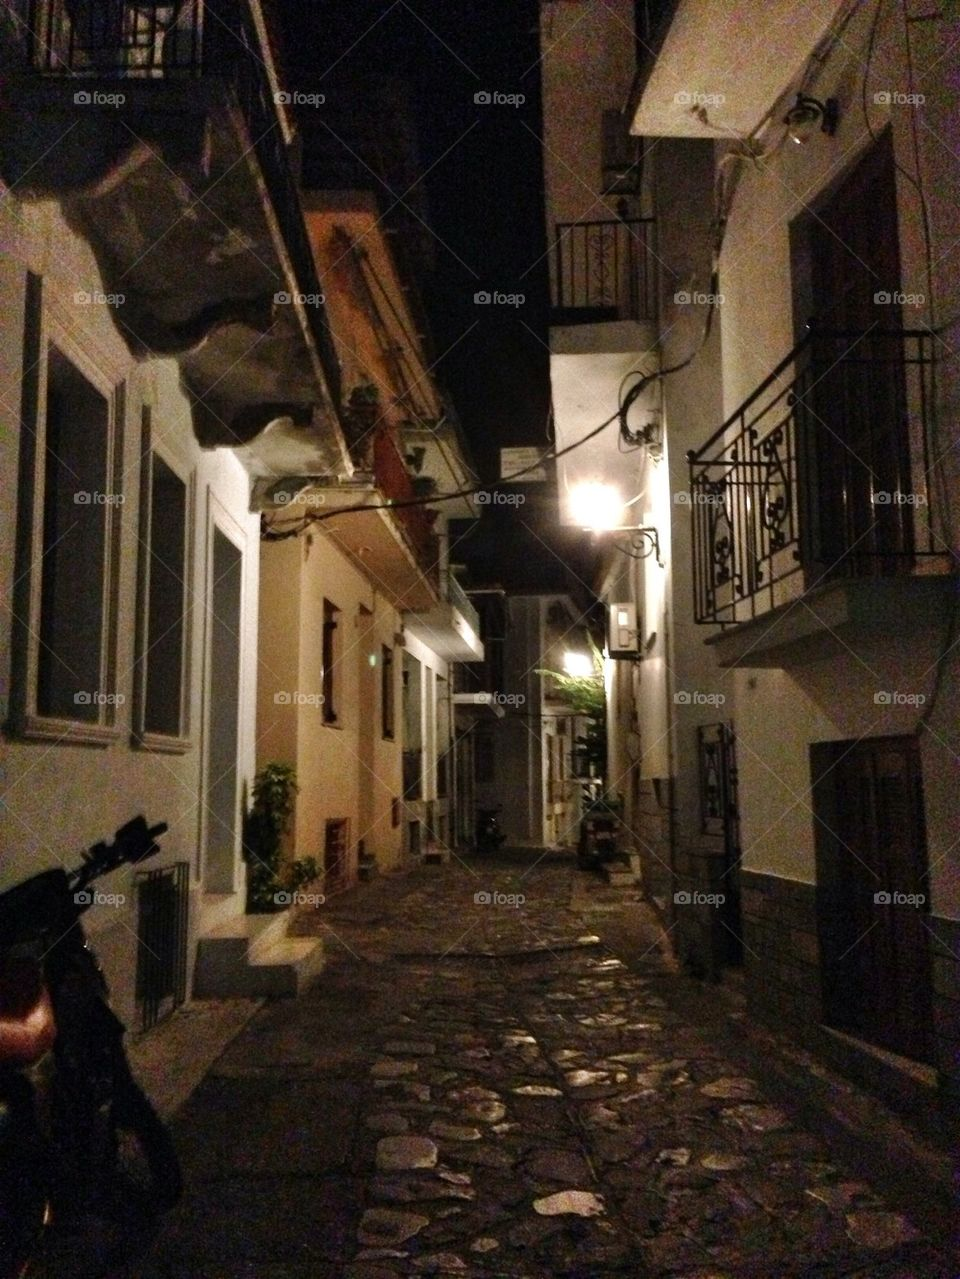 street night balconies houses by jeanello